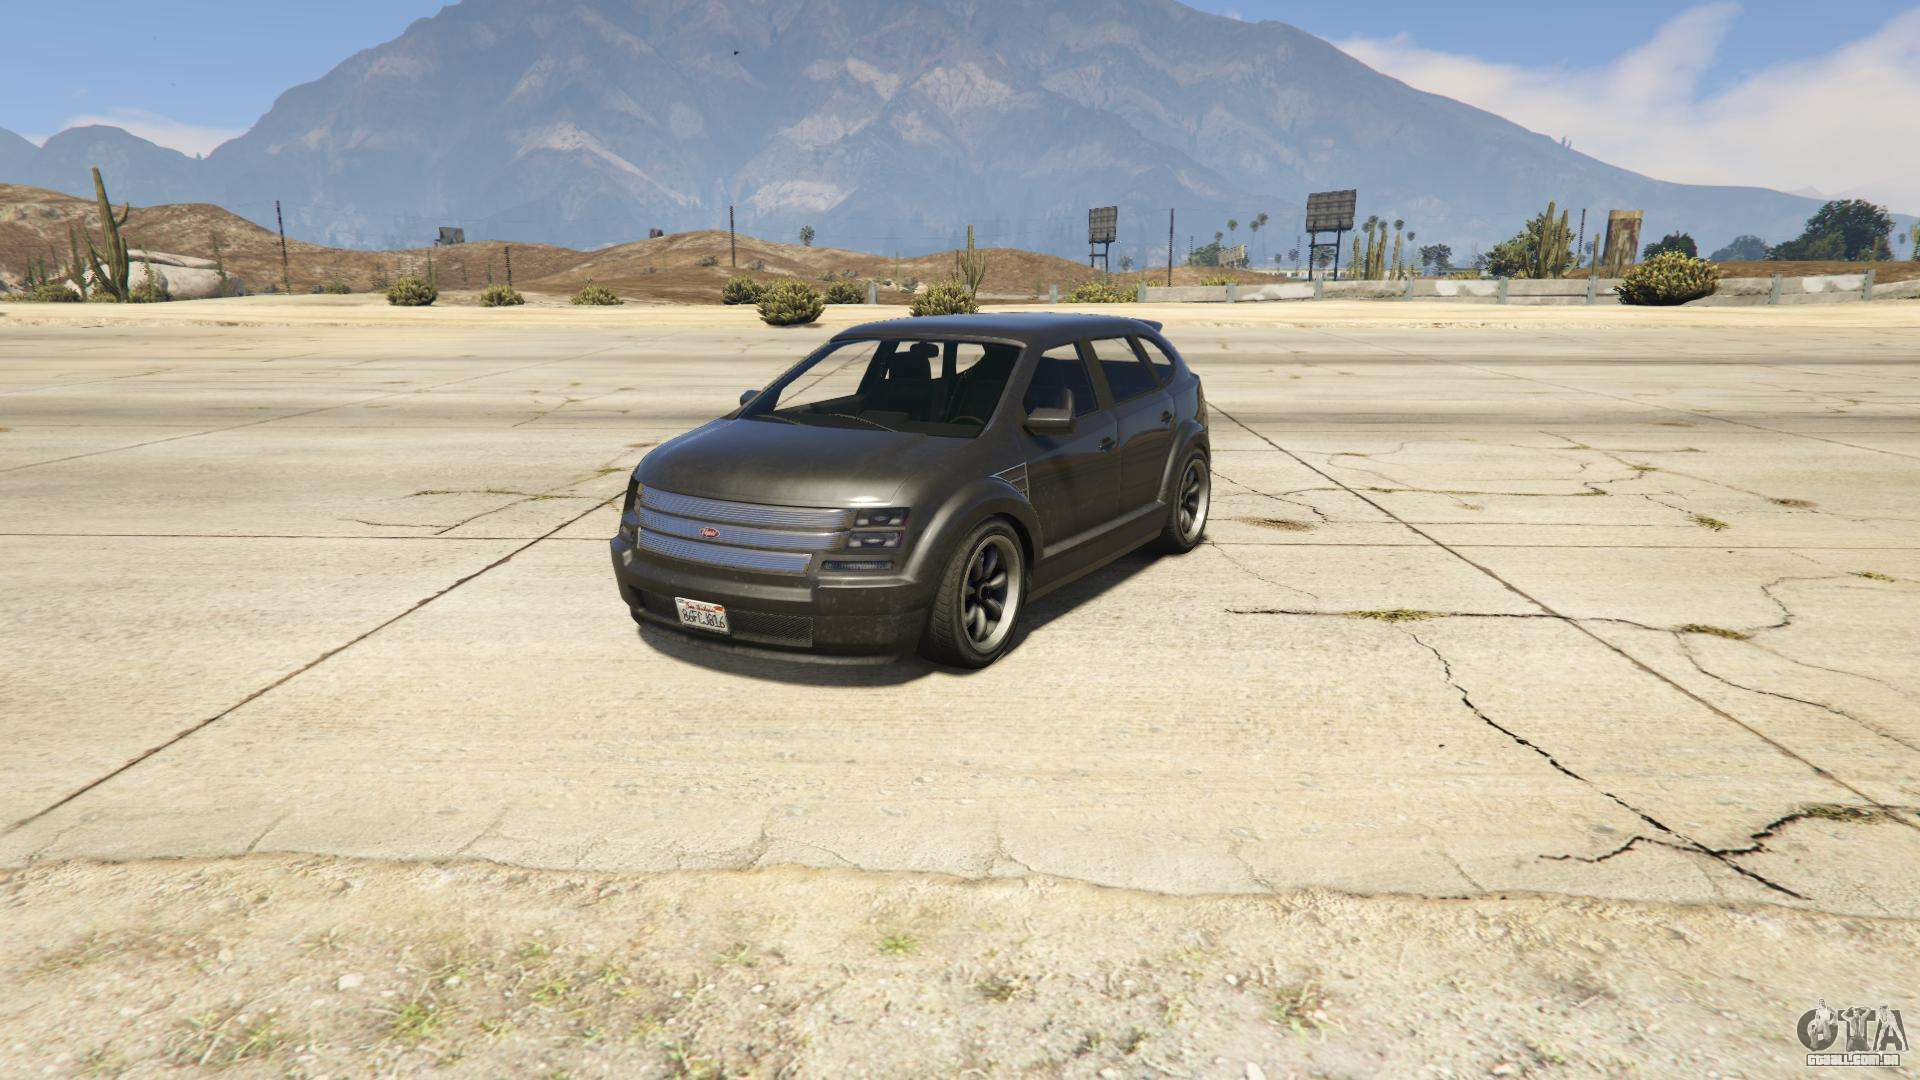 Vapid Radius de GTA 5 - vista frontal